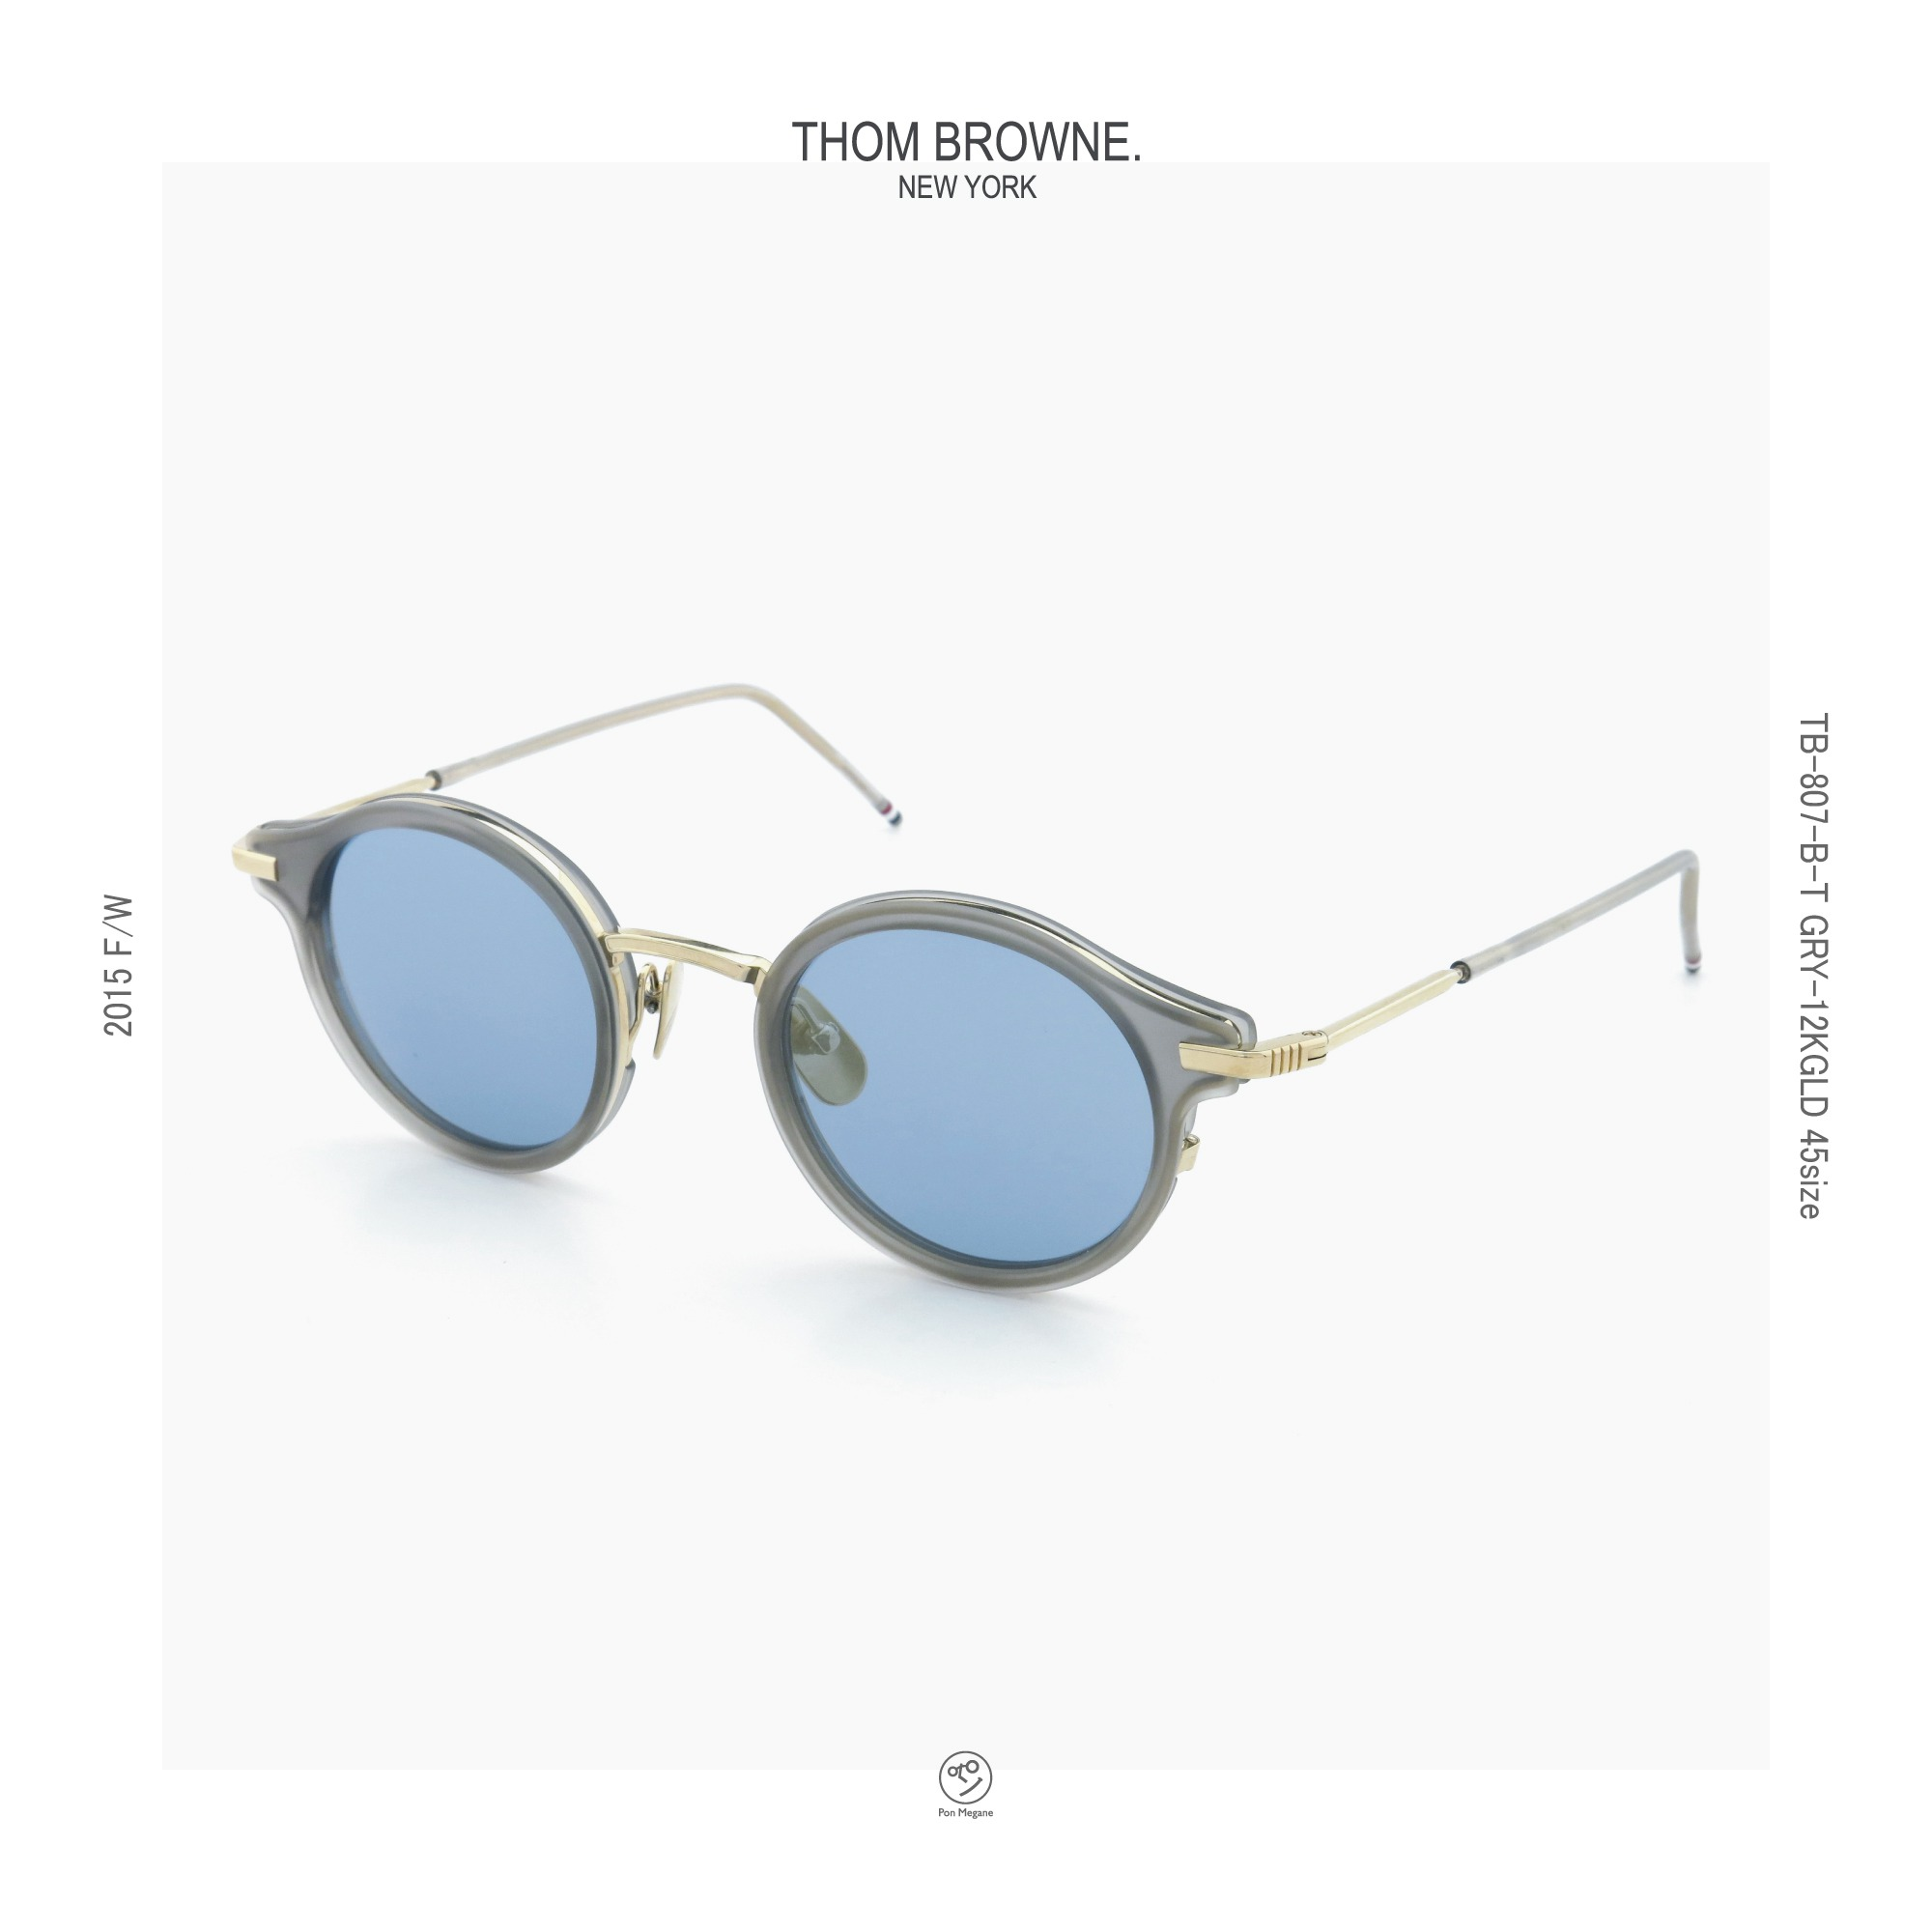 865a0123a50 THOM BROWNE. 2015F W collection   2015年秋冬 トムブラウン最新作 ...